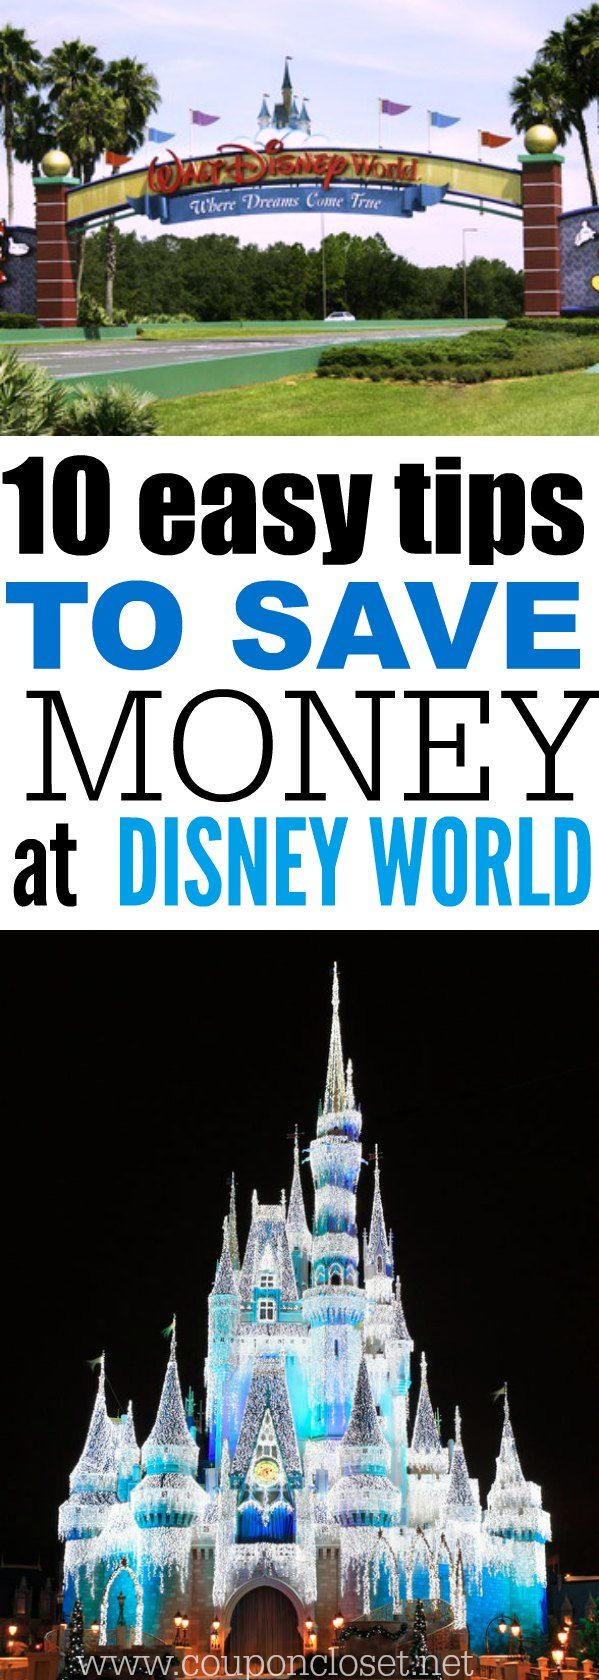 Save Money at Disney World - here are 10 easy money saving tips that you haven't thought of to save money inside Disney world.